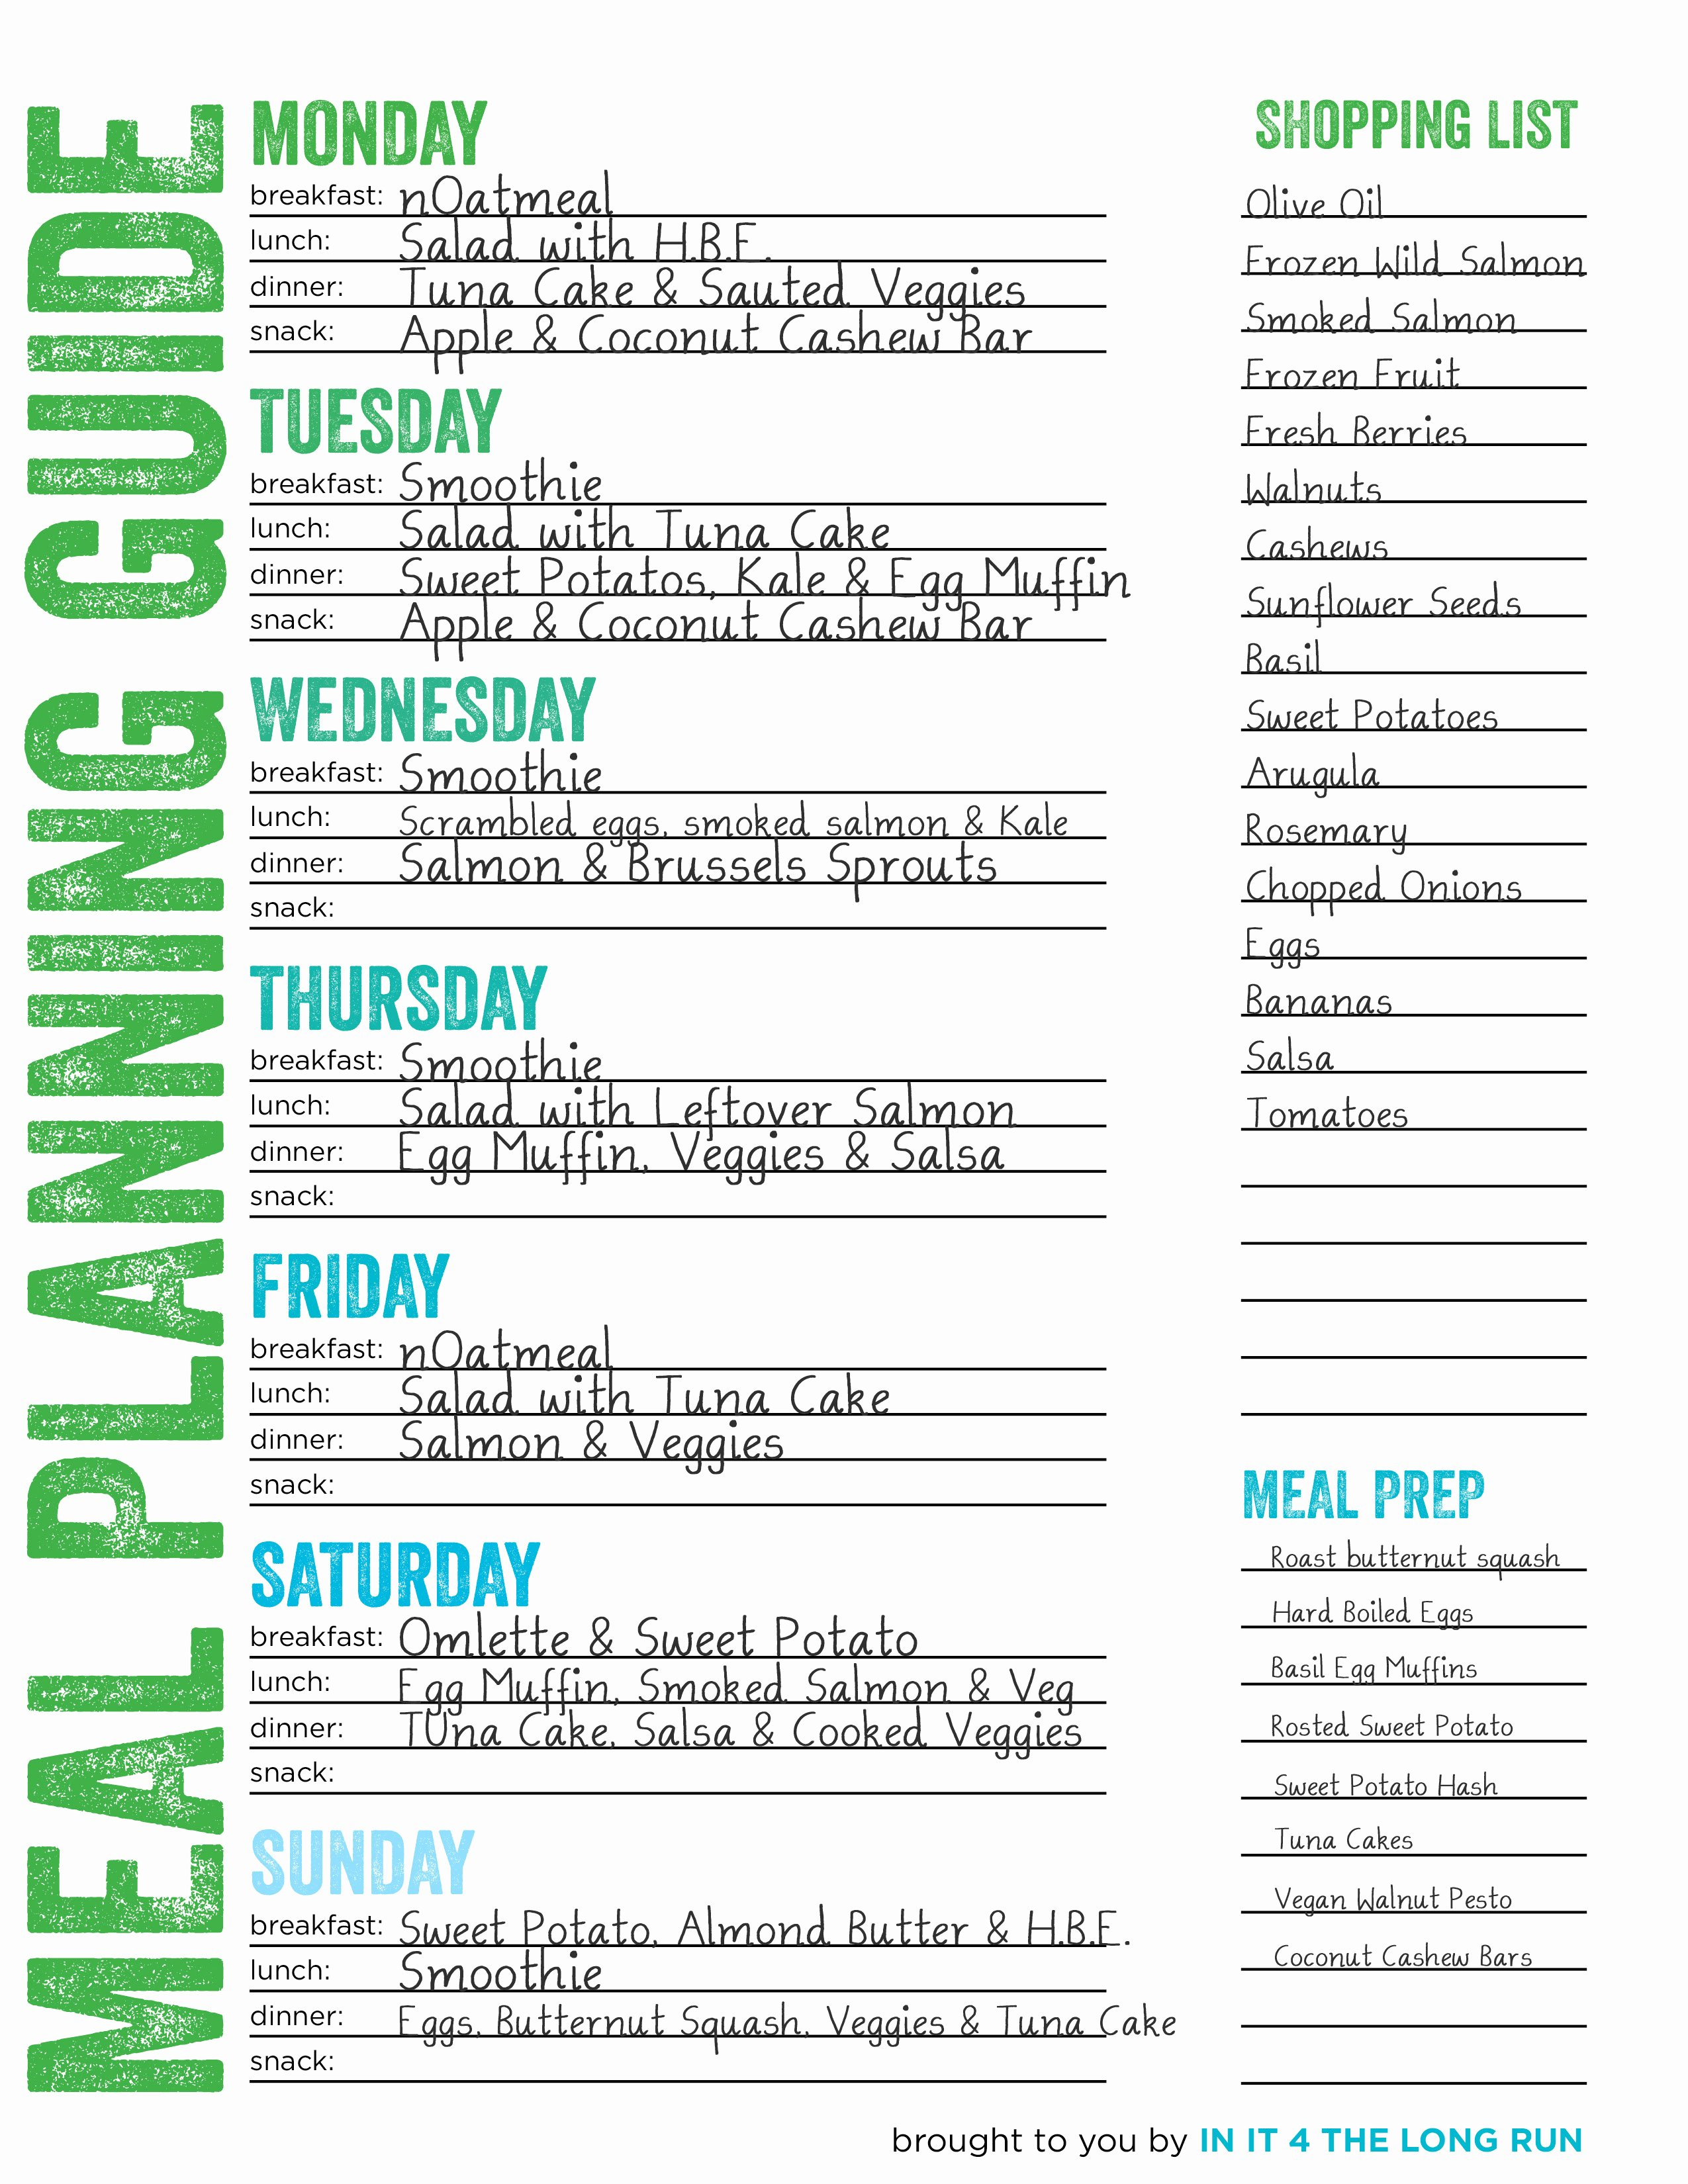 Whole 30 Meal Plan Template Luxury What I Planned Vs What I Actually Bought and Prepped